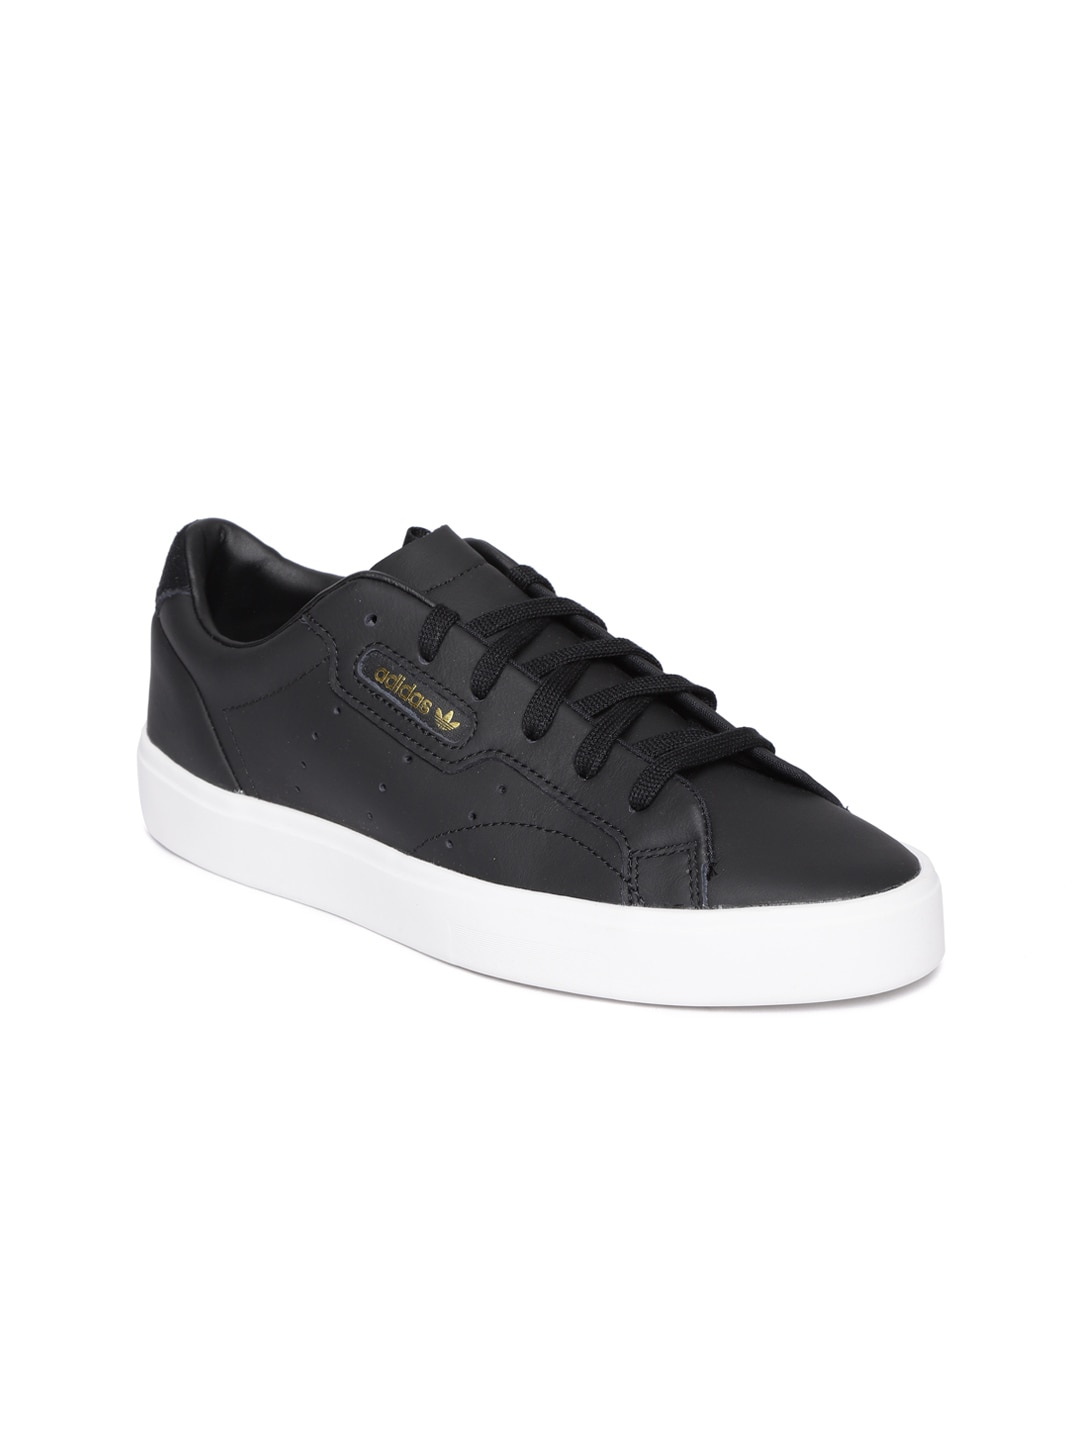 hot sale online bec5c 256f9 Adidas Leather Shoes - Buy Adidas Leather Shoes Online in In